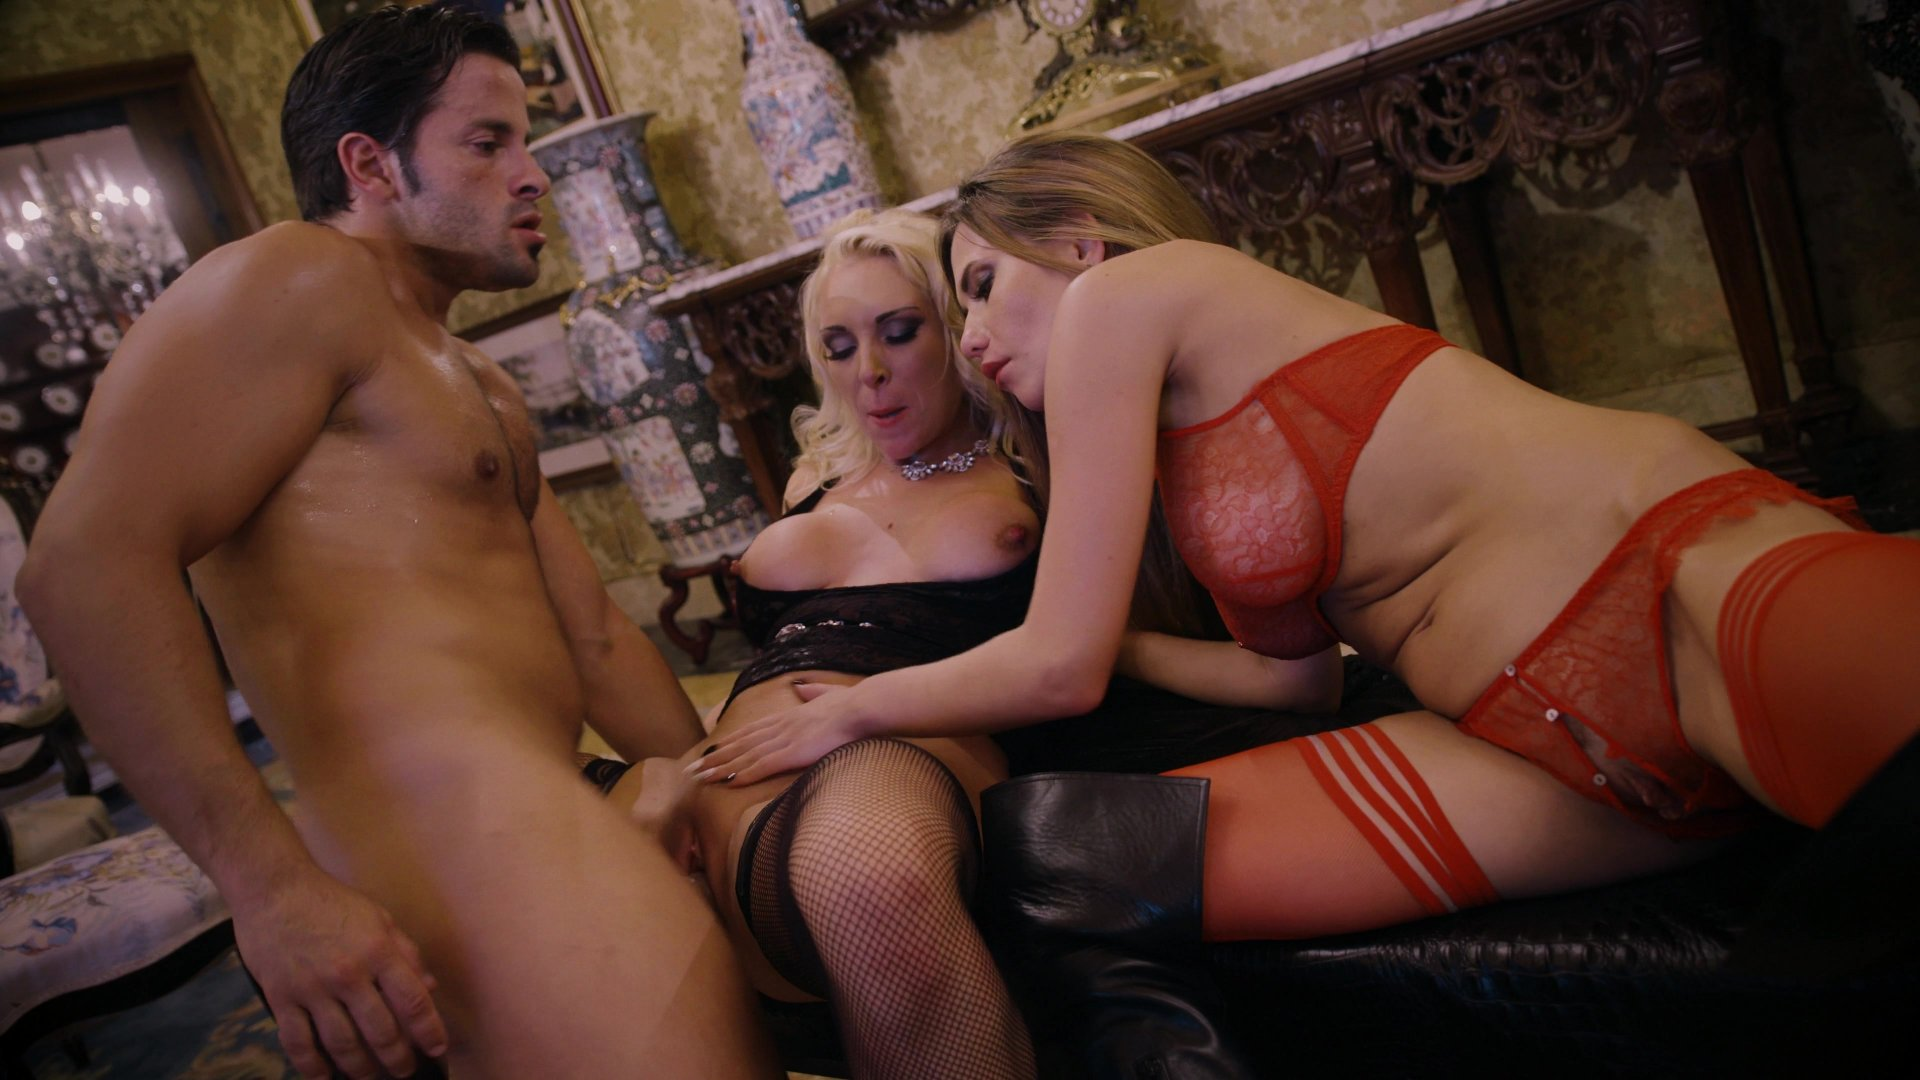 Vid. wish swinger pictures and information